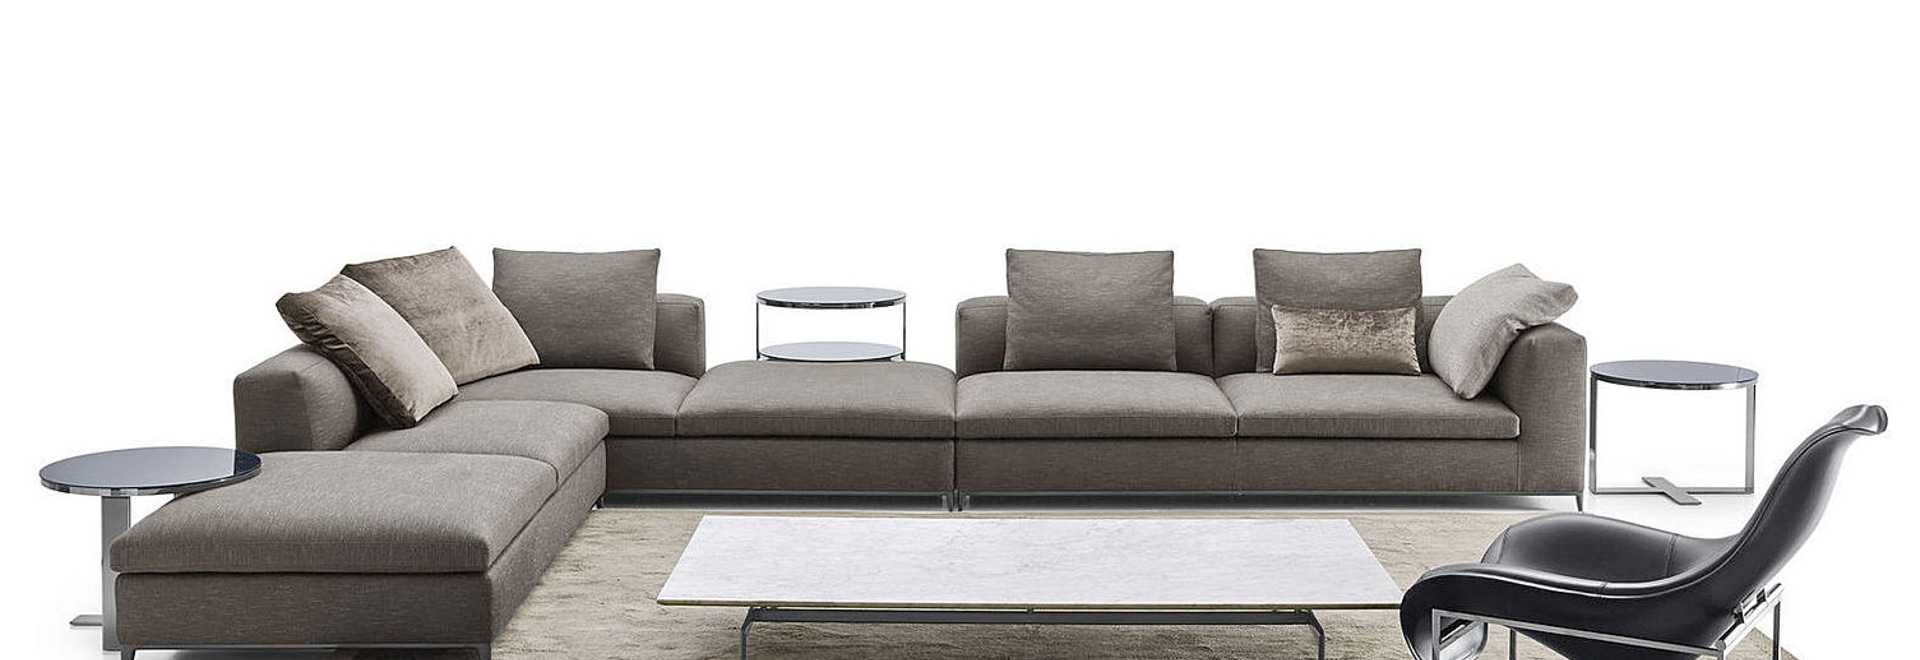 NEW: modular sofa by B&B Italia